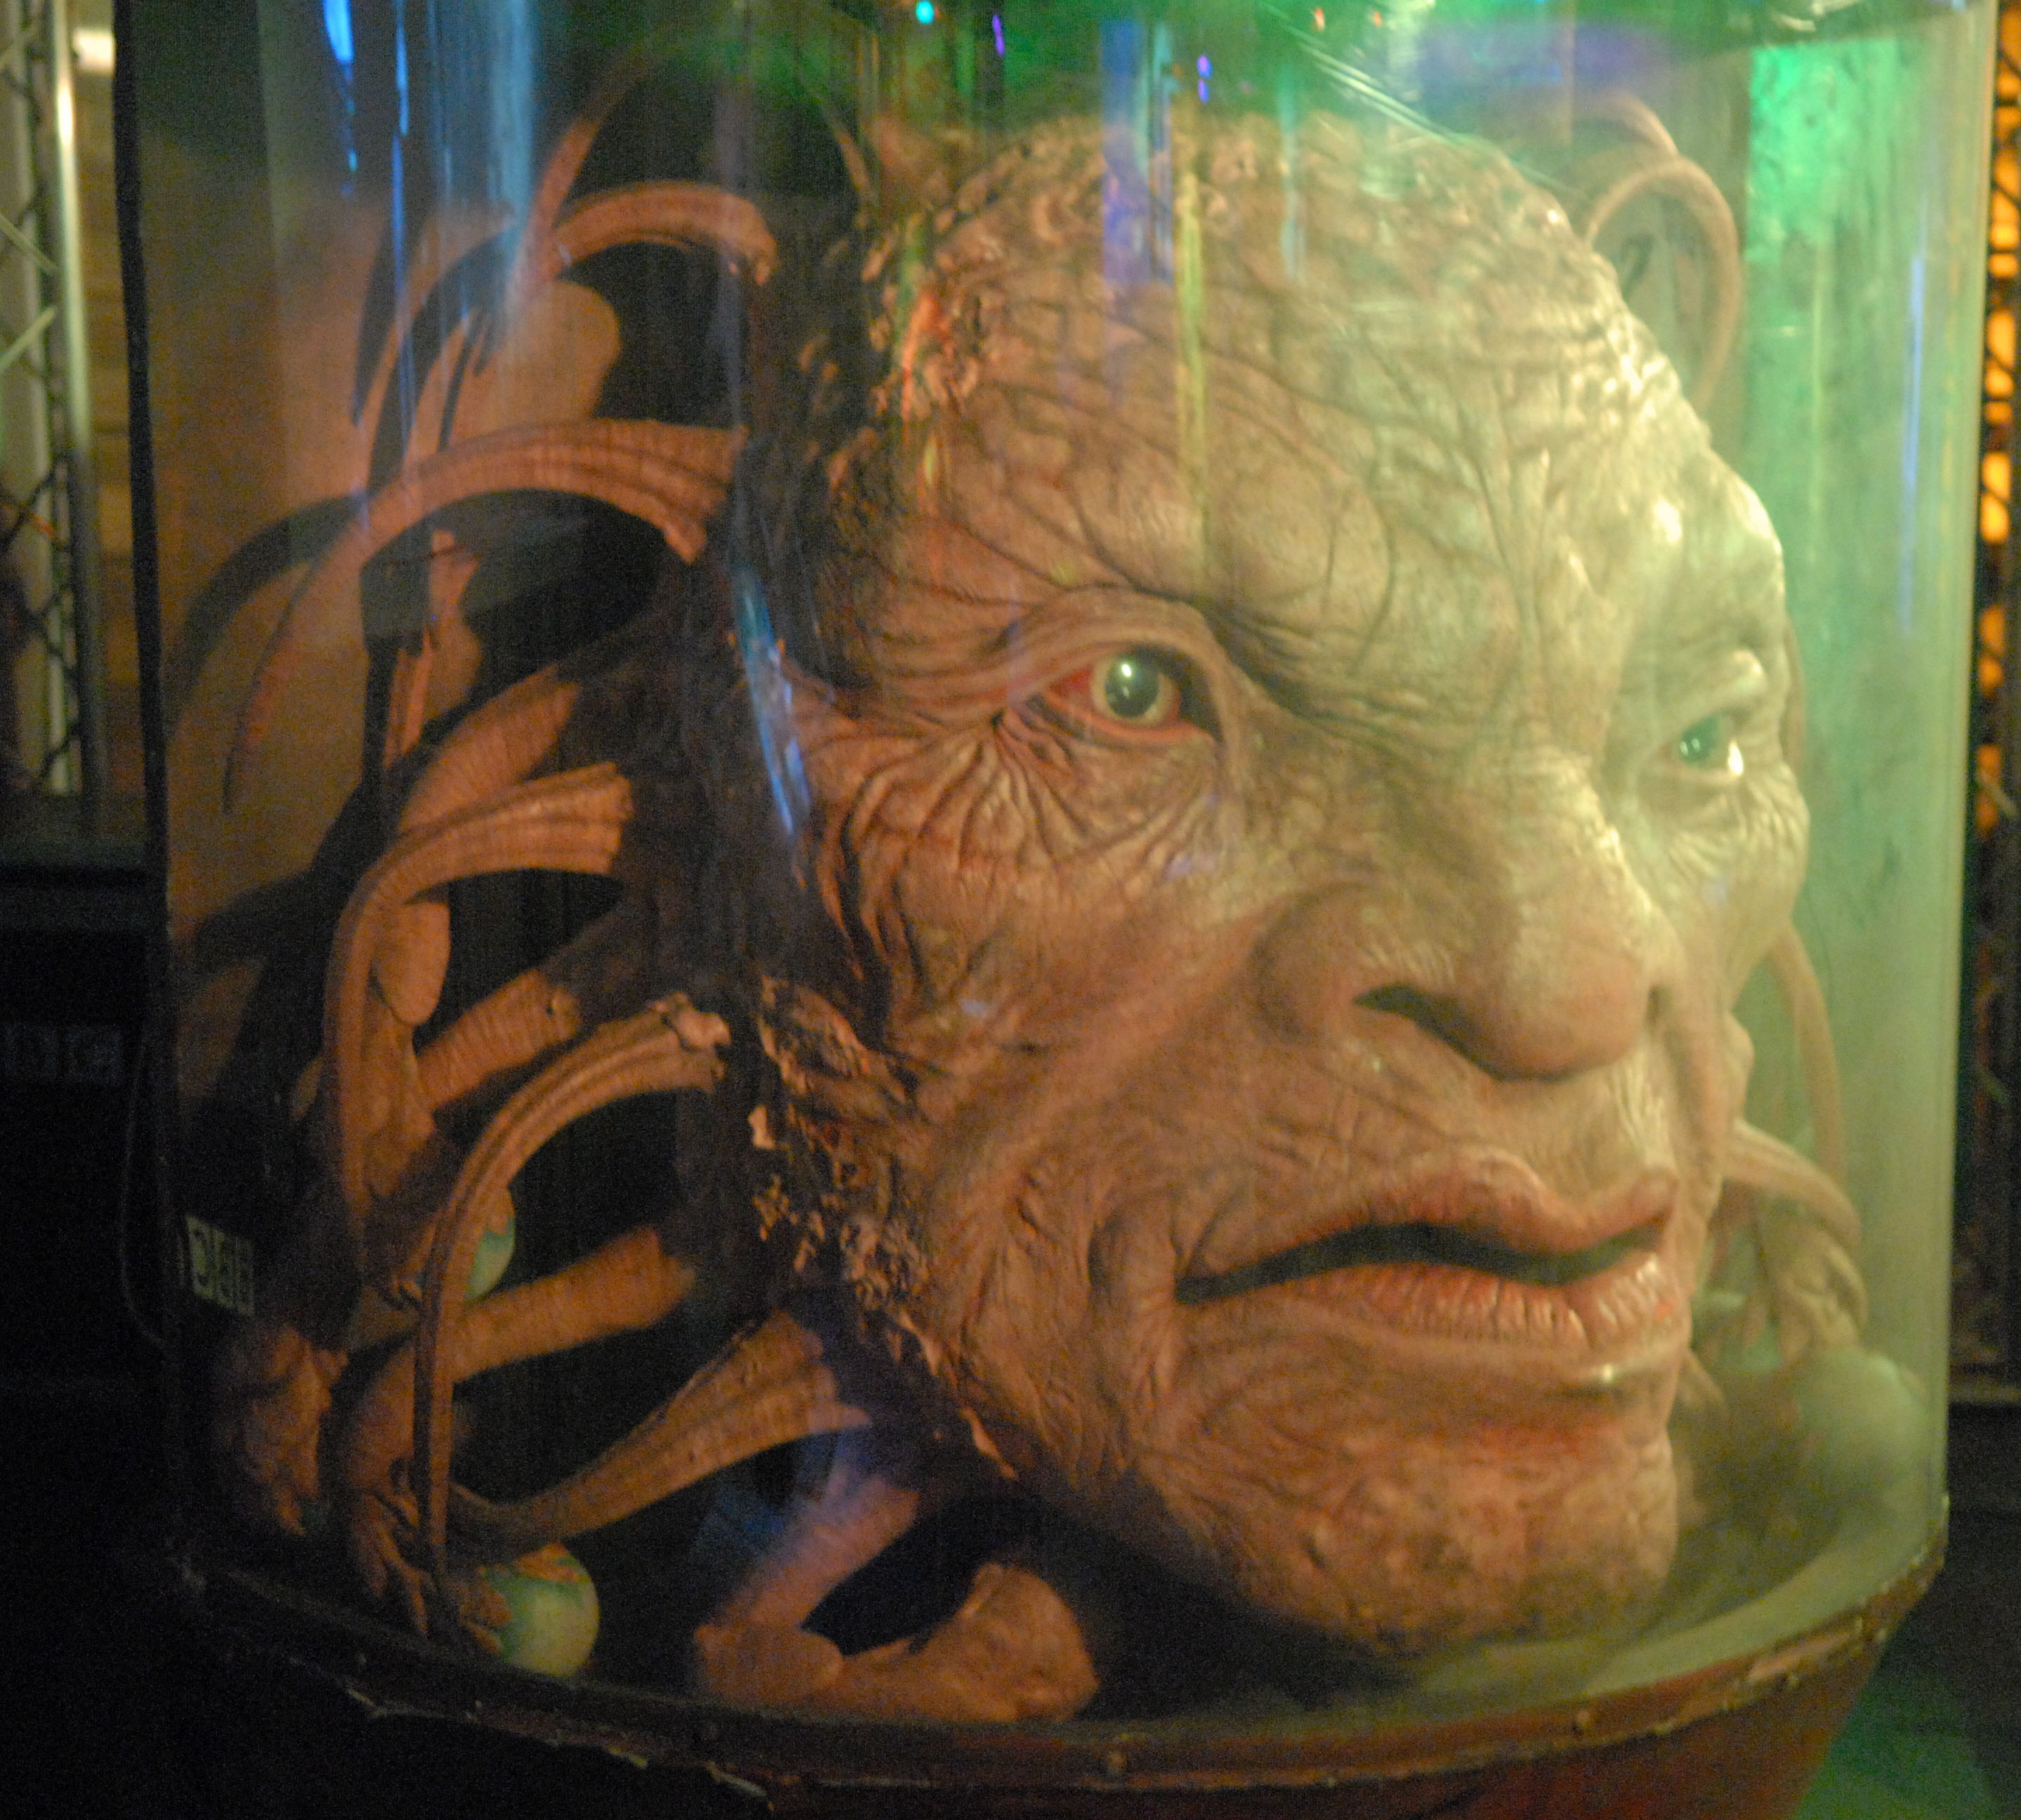 Fans think that Captain Jack becomes the Face of Boe